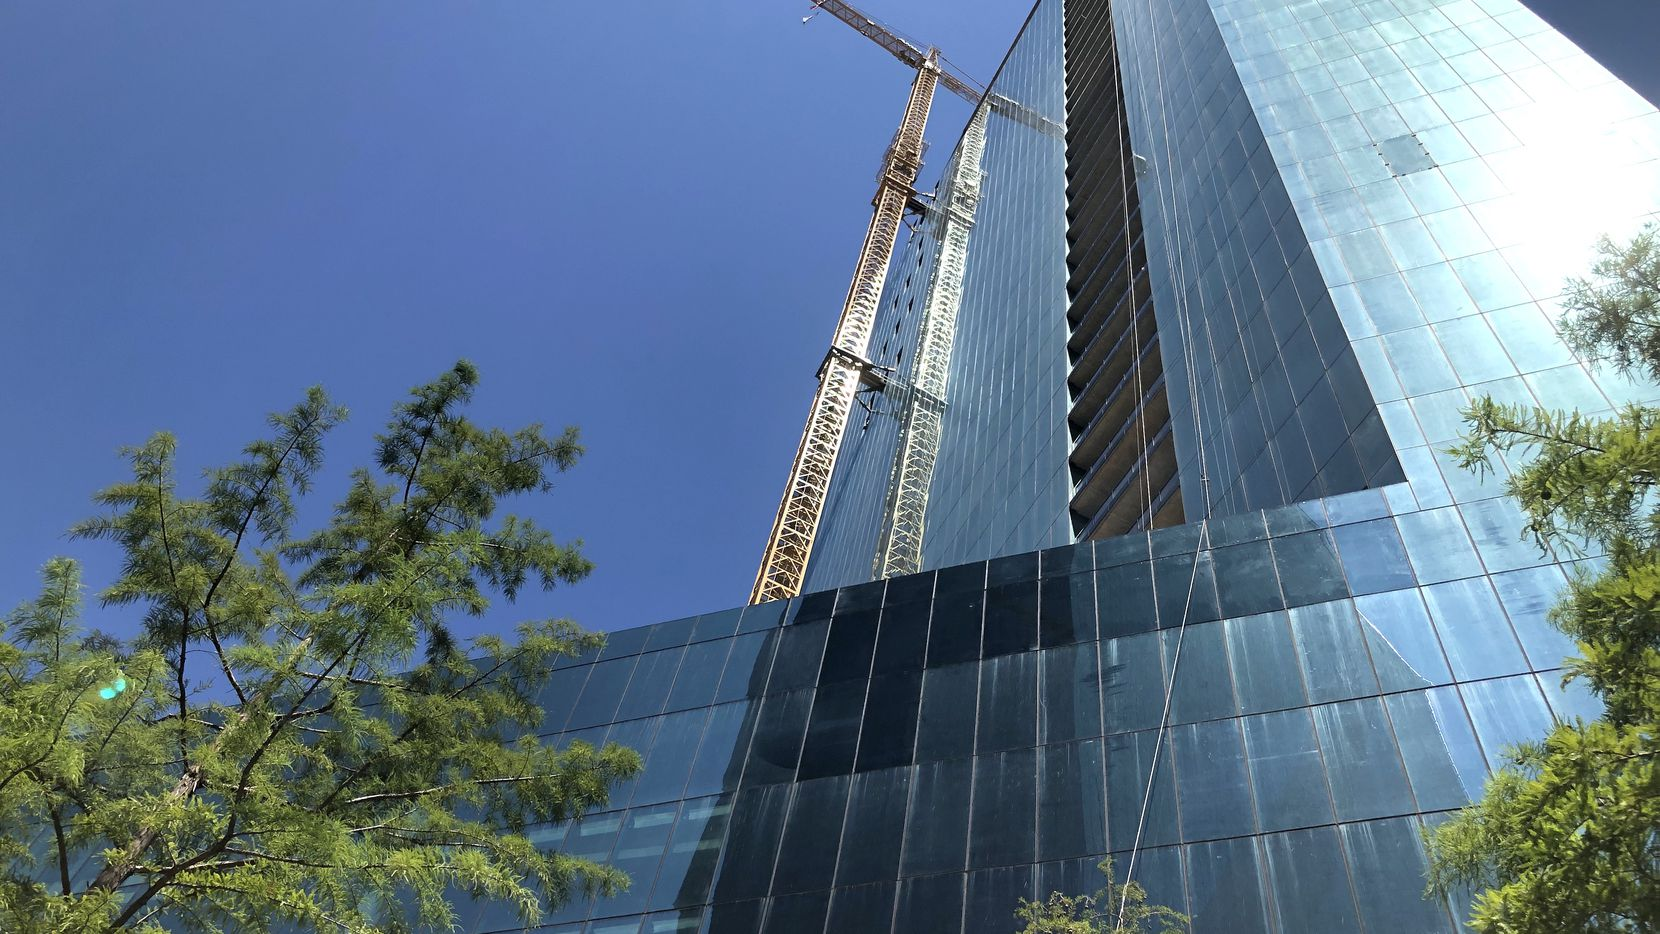 The 45-story Amli Fountain Place tower is under construction on the north side of downtown Dallas